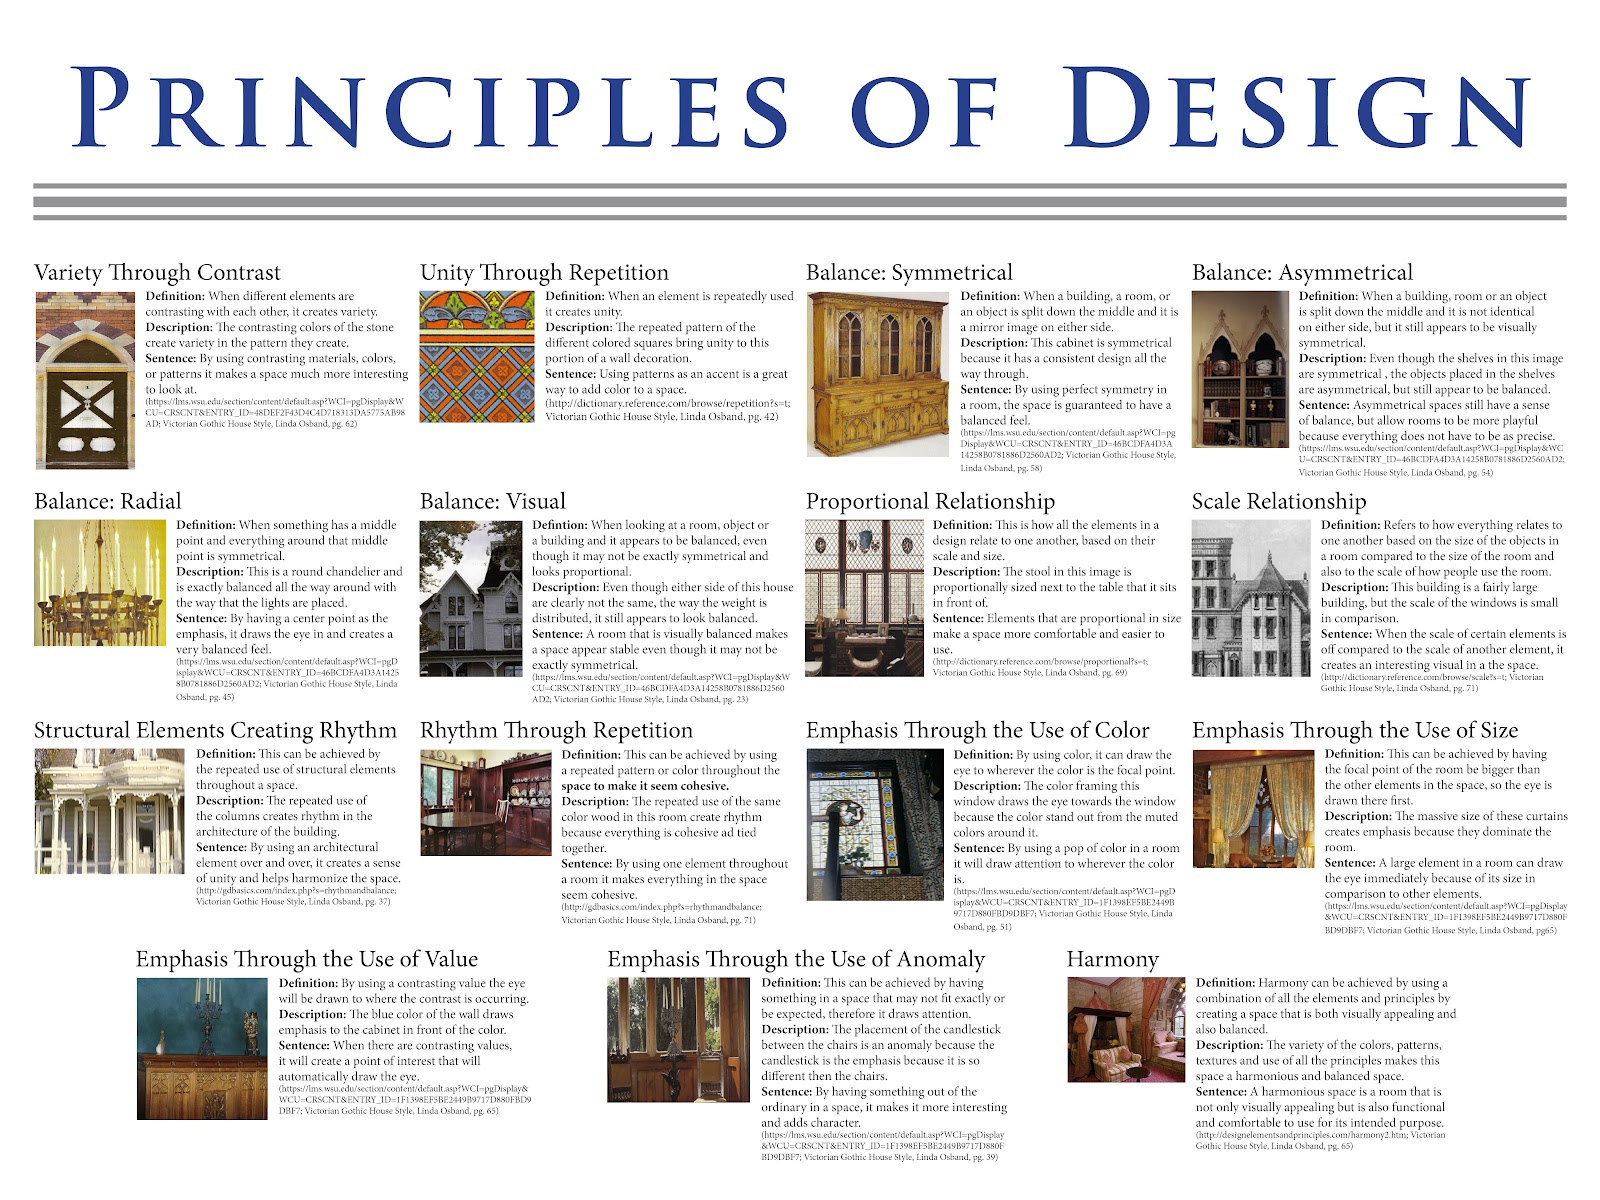 7 Elements And Principles Of Design : Principles of design visual communication